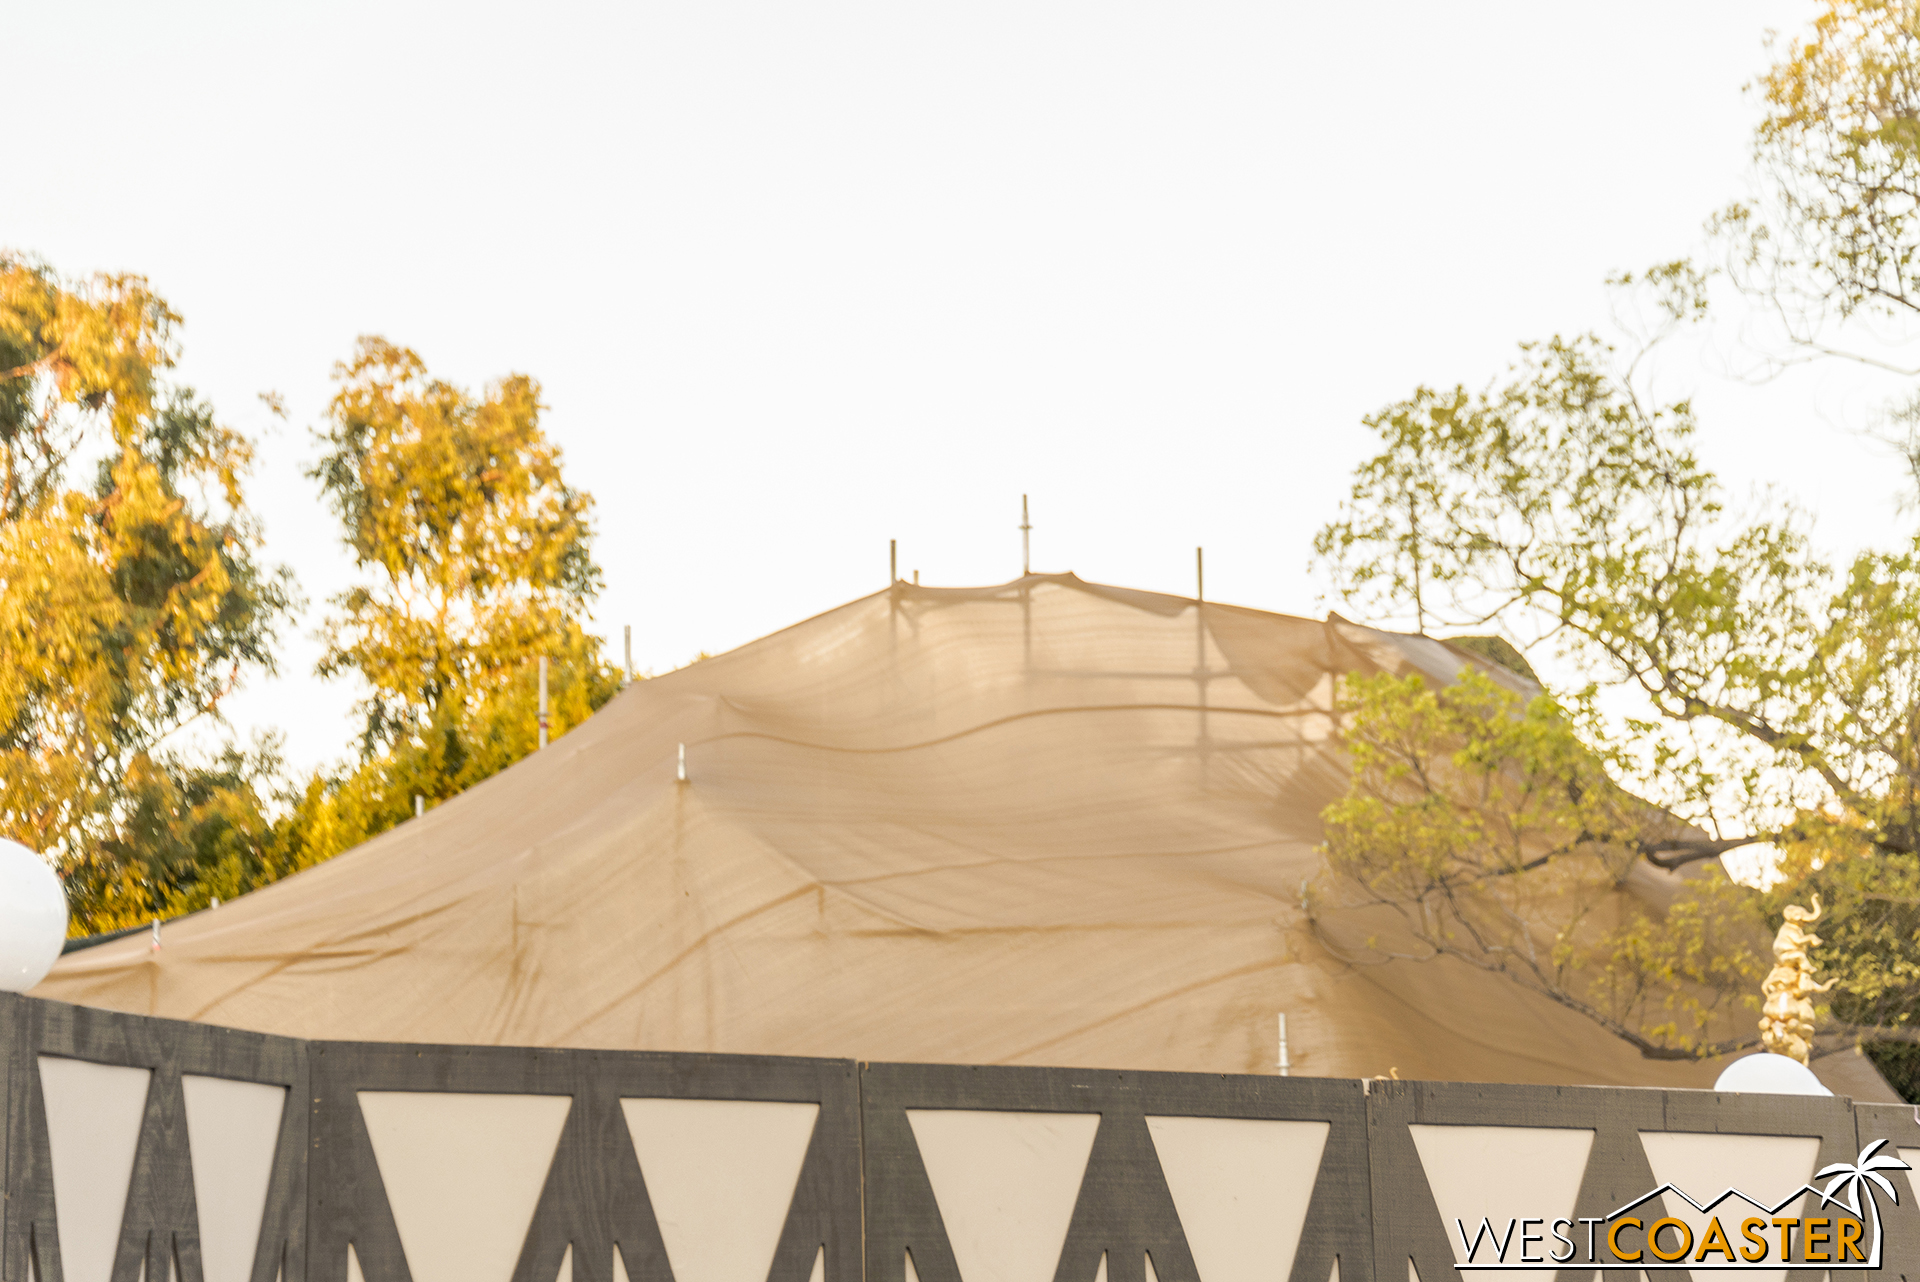 Over at Storybook Land, there is still some amount of tarps and scaffolding up.